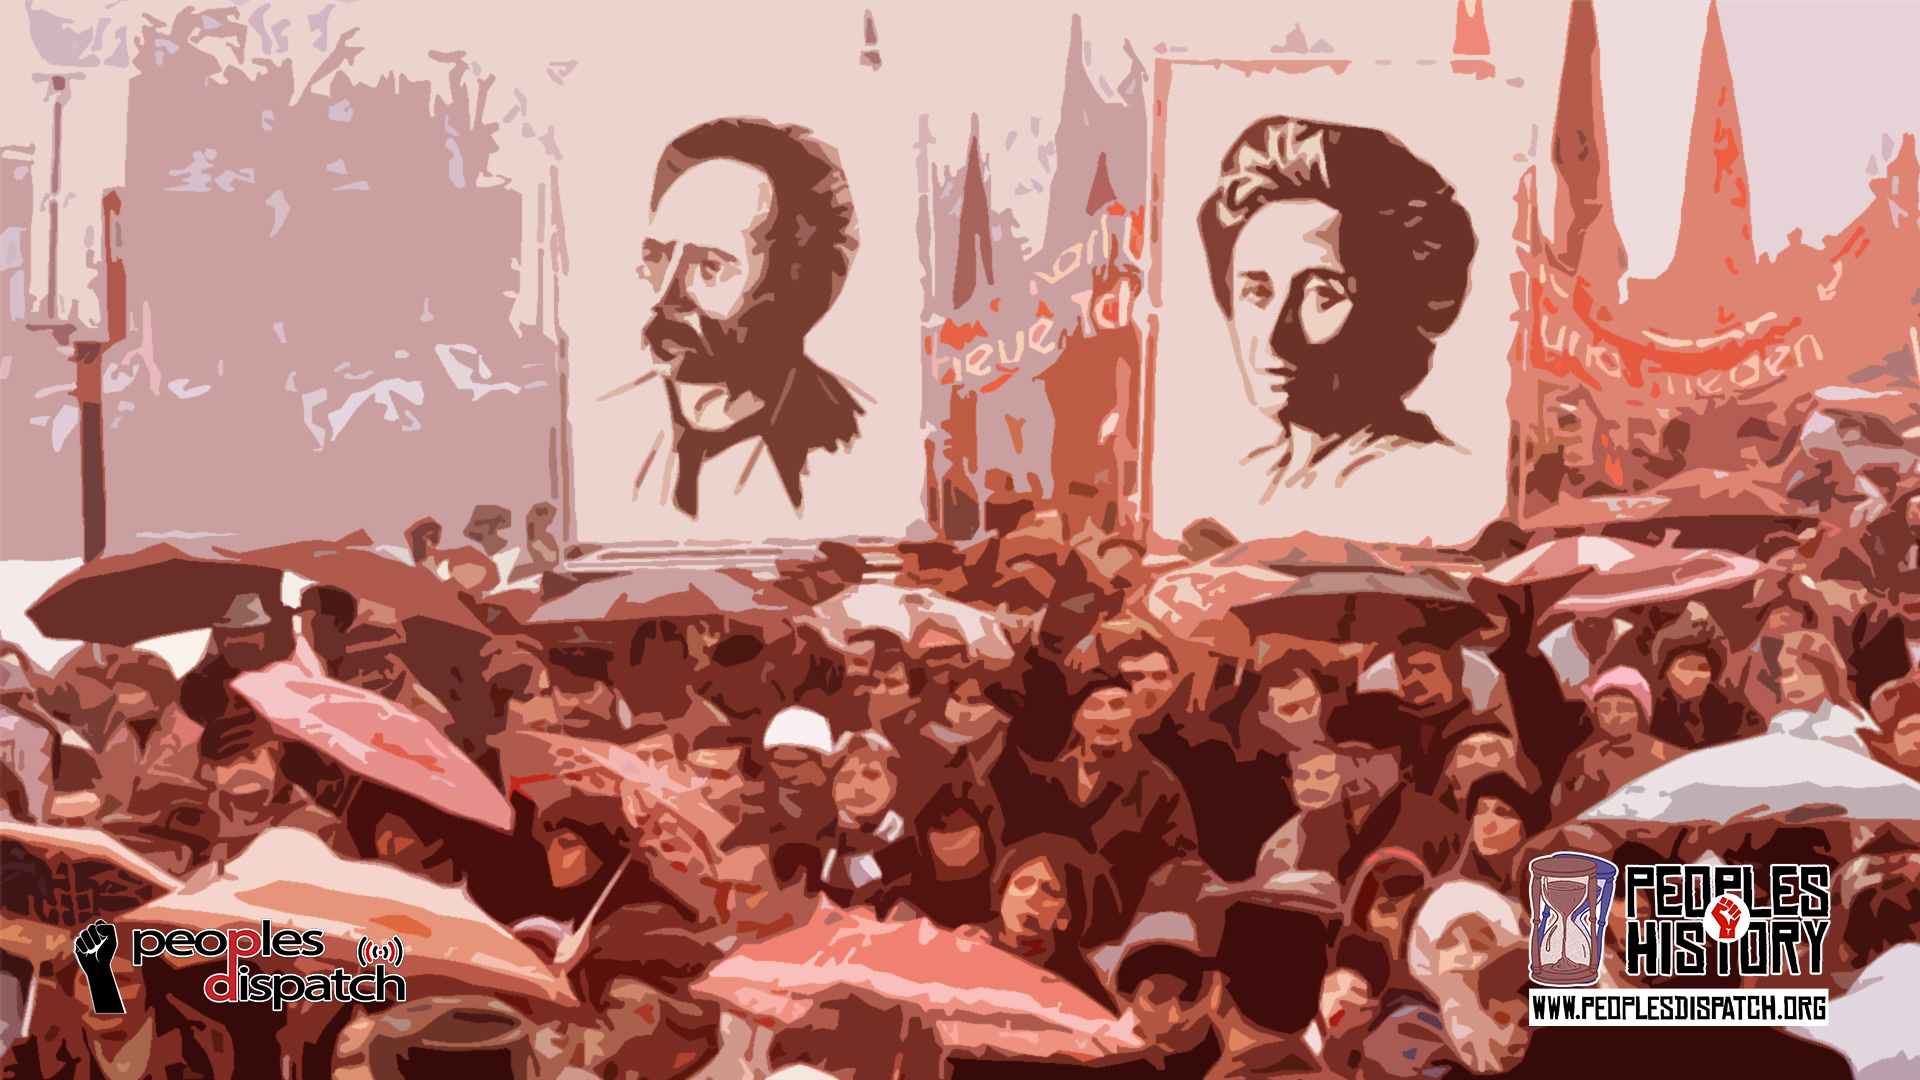 communist leaders; Rosa Luxemburg and Karl Liebknecht in Germany were murdered